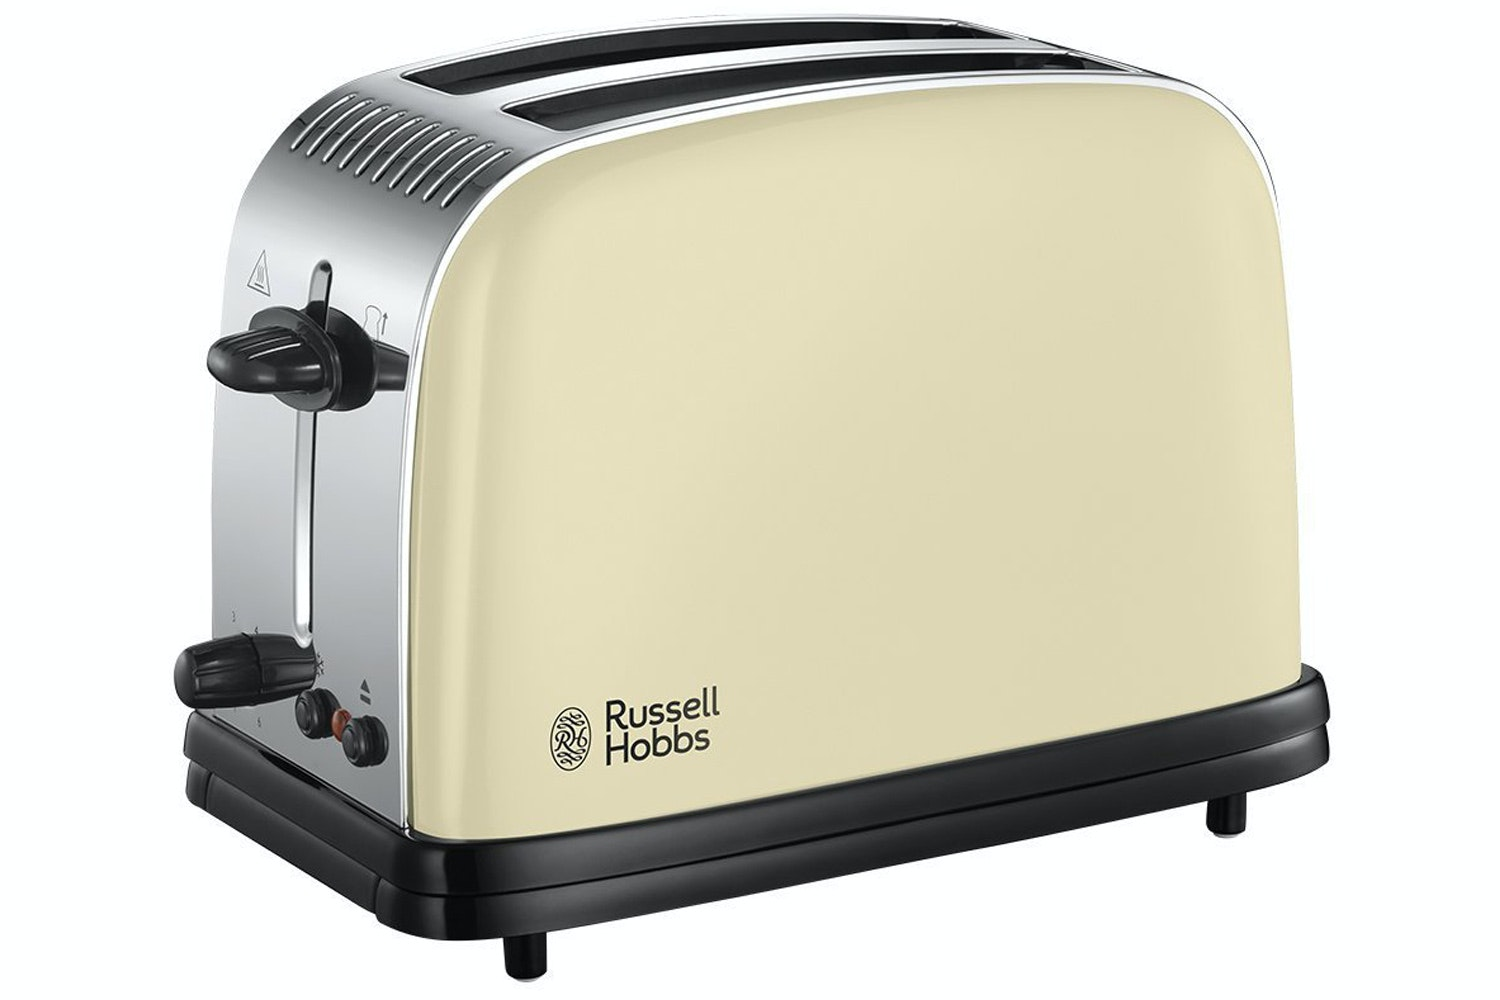 Russell Hobbs Plus 2 Slice Toaster Cream